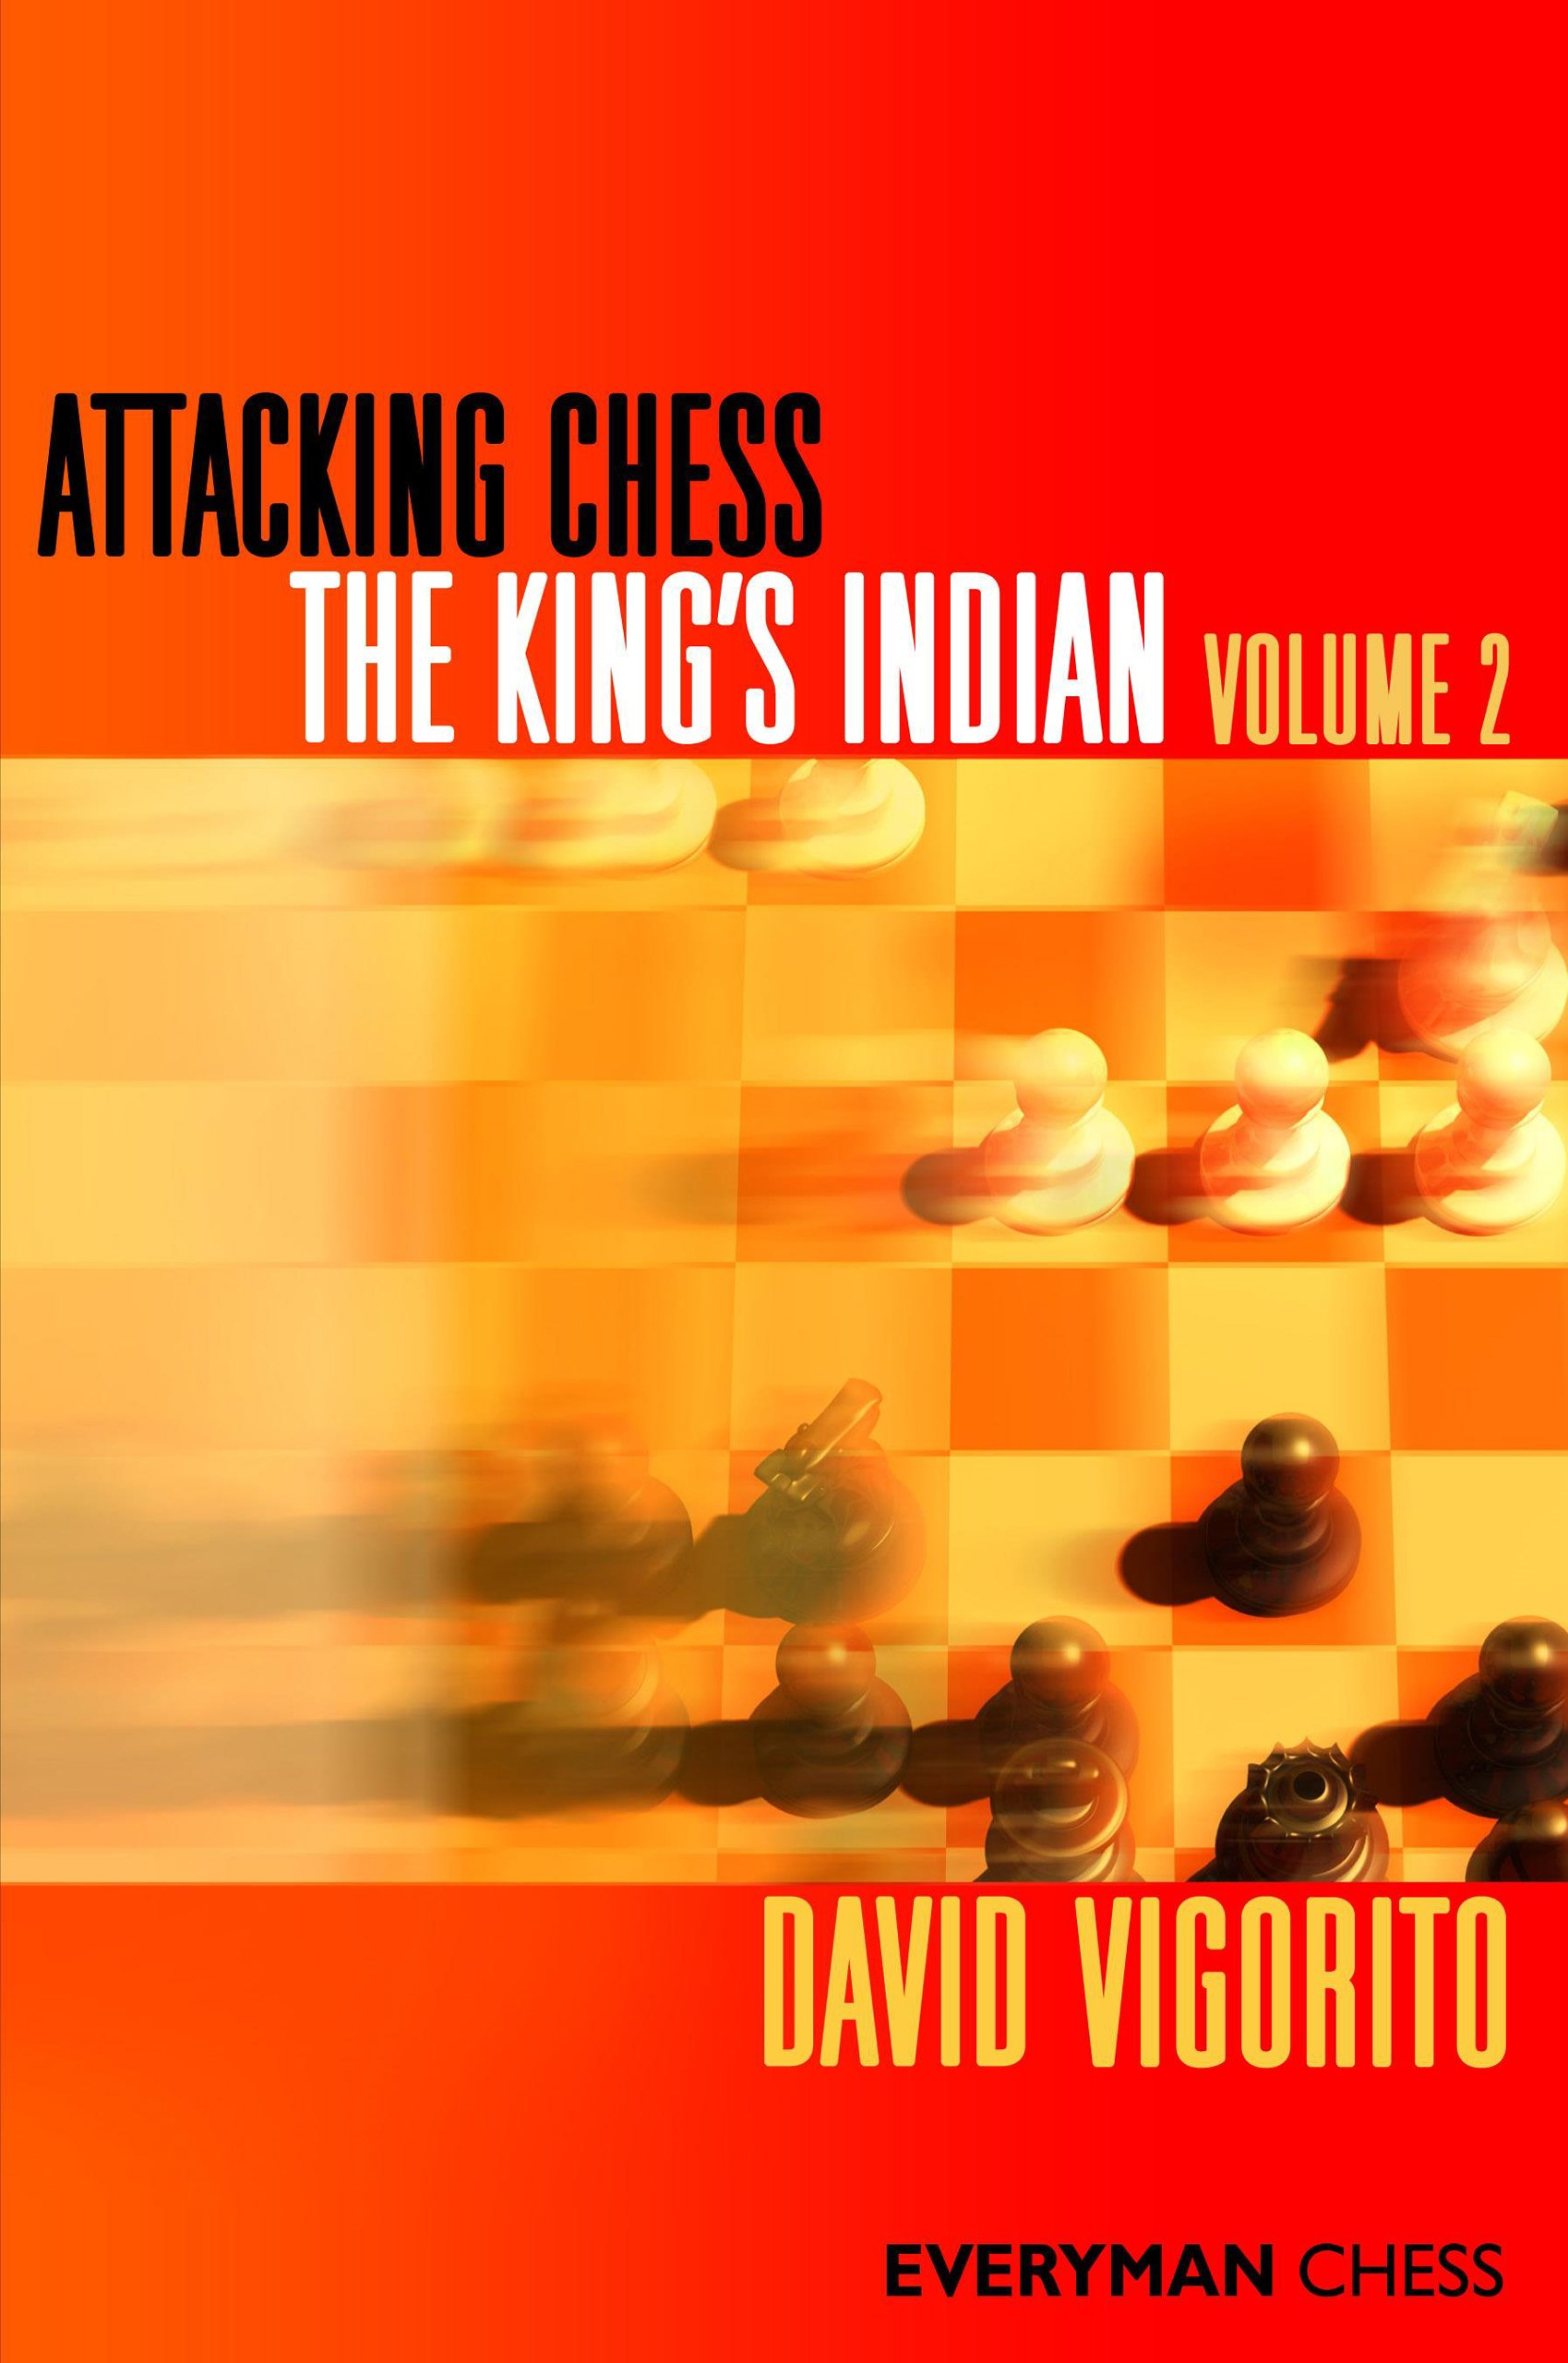 Attacking Chess: The King's Indian (Volume 2) free download